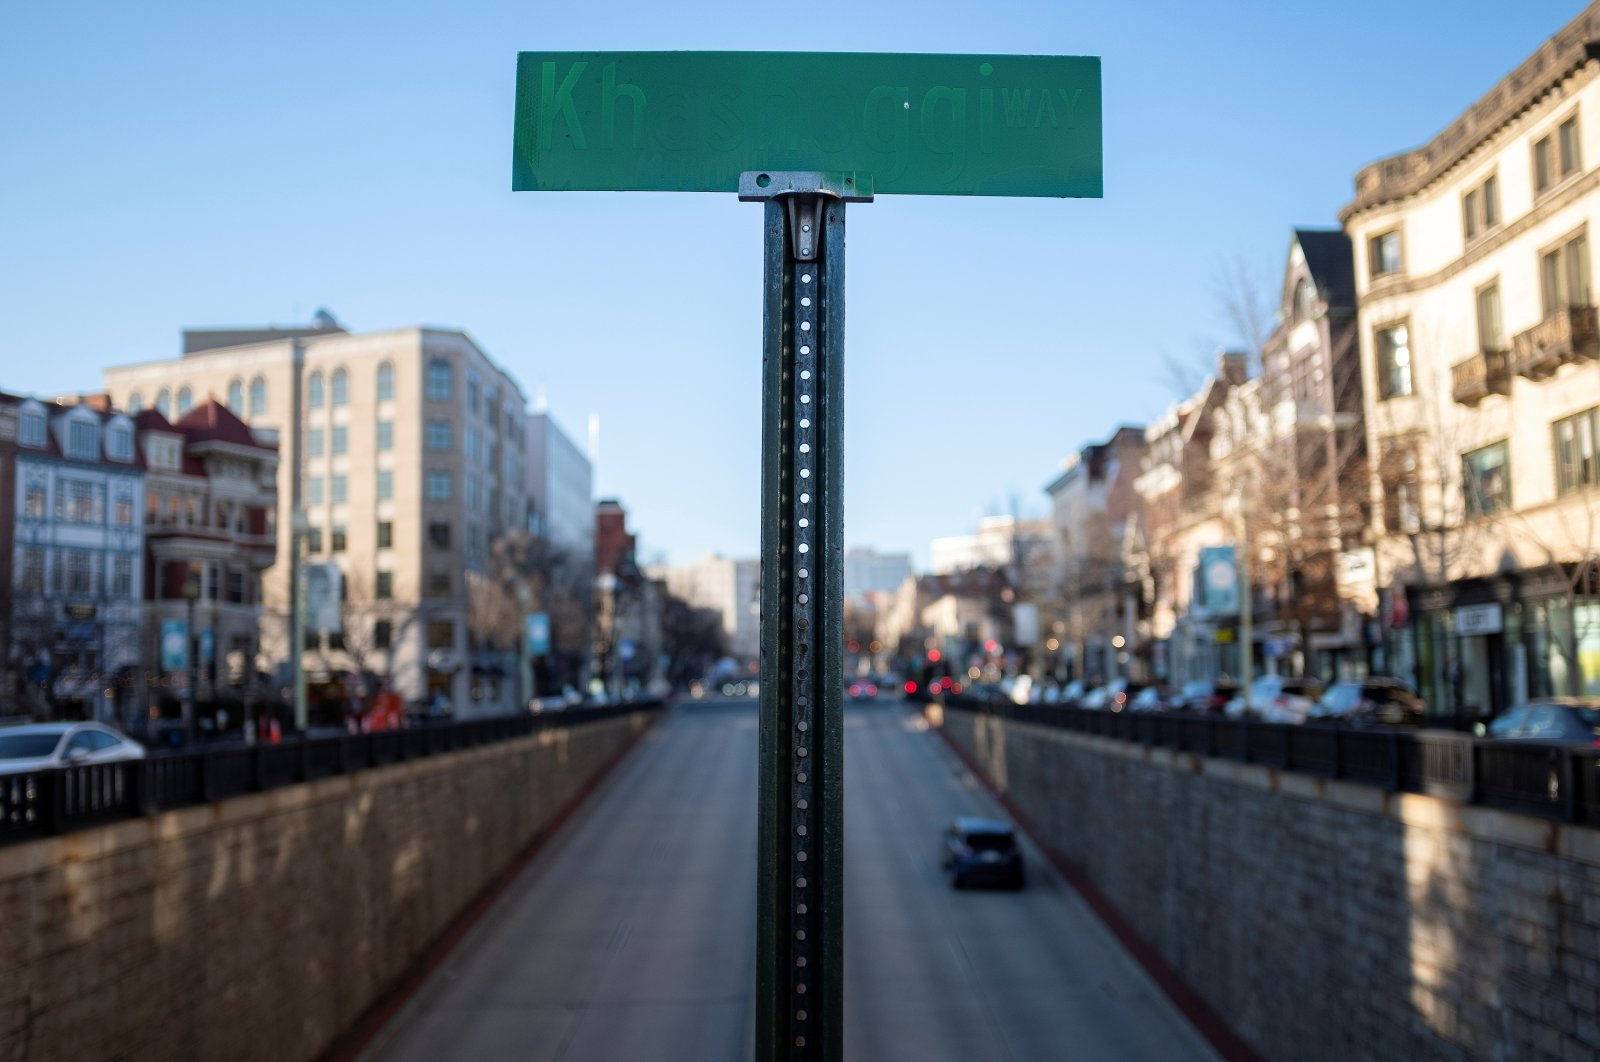 """A symbolic street sign named """"Khashoggi Way"""" stands above Connecticut Avenue in the Dupont Circle neighborhood of Washington, U.S., March 2, 2021. (Reuters Photo)"""